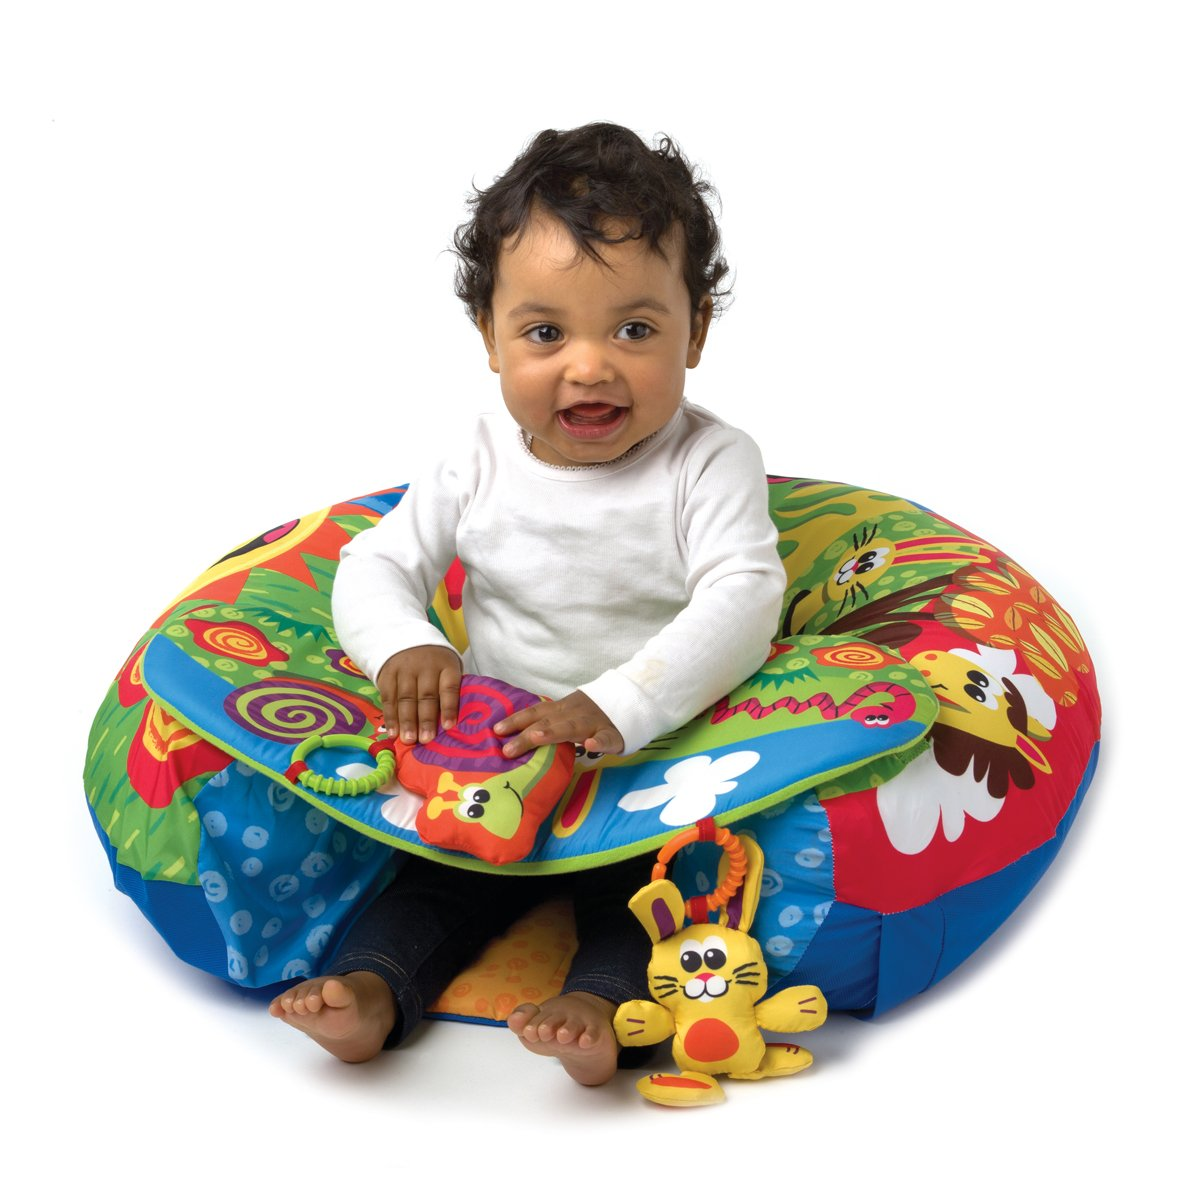 Baby play chairs - Baby Play Chairs 21